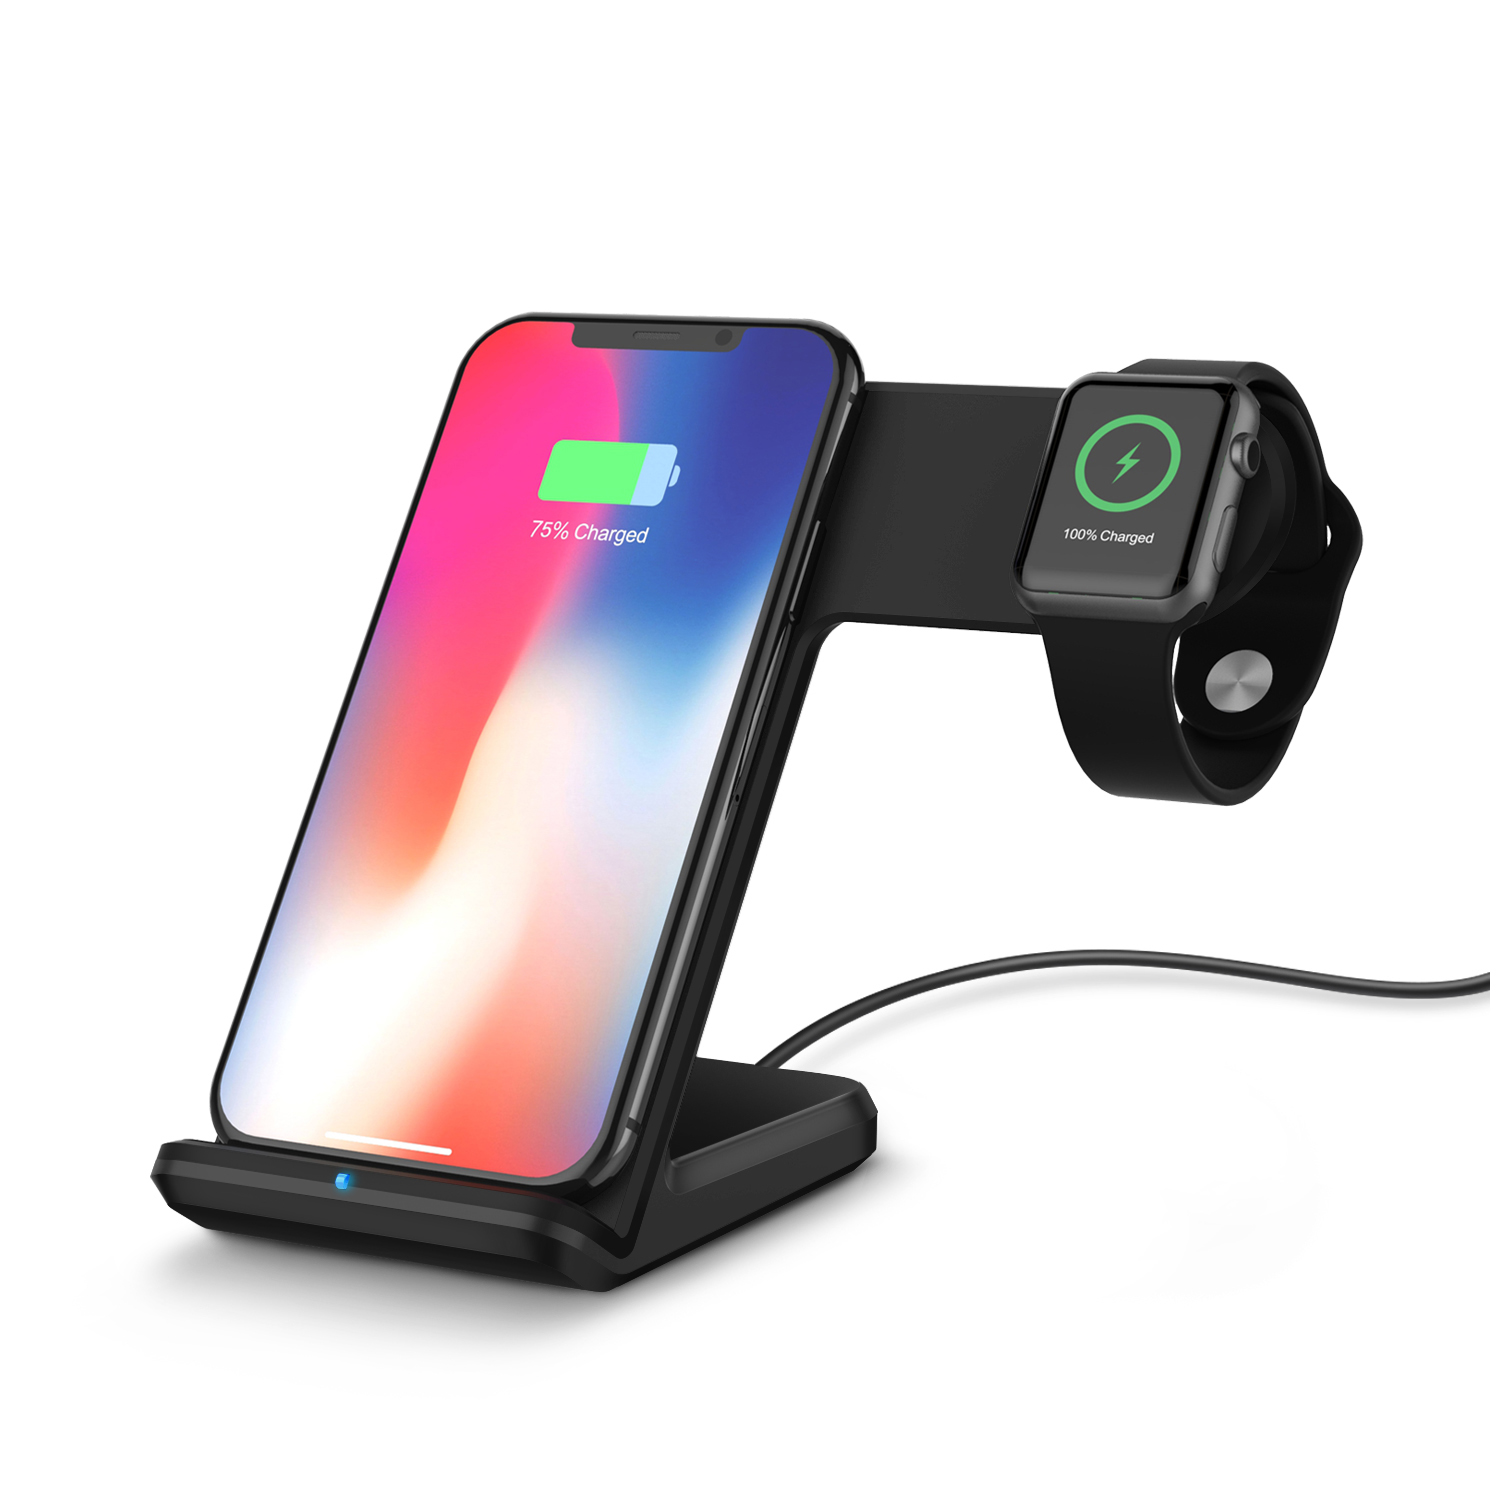 2 in 1 fast wireless ladestation f r iphone xr xs x apple. Black Bedroom Furniture Sets. Home Design Ideas